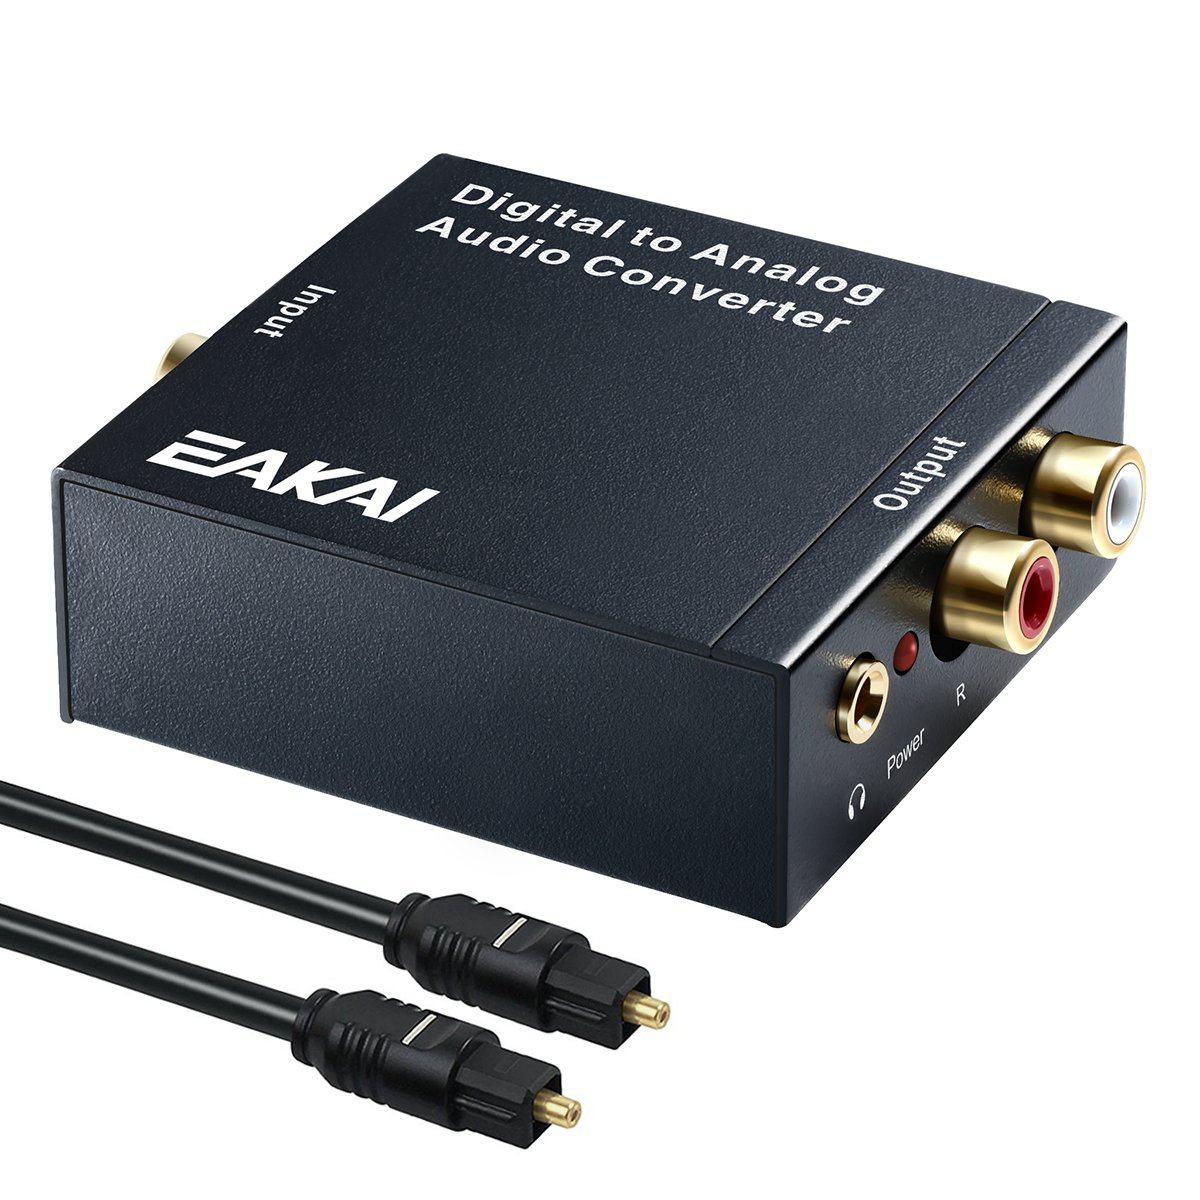 EAKAI Digital Optical Coax to Analog RCA Audio Converter with 3.5 mm Jack, 24-bit DAC with DC 5V Power Supply Adapter with Optical Cable for PS3 PS4 XBox DVD Apple TV Roku Player [USA UL Licensed] by EAKAI